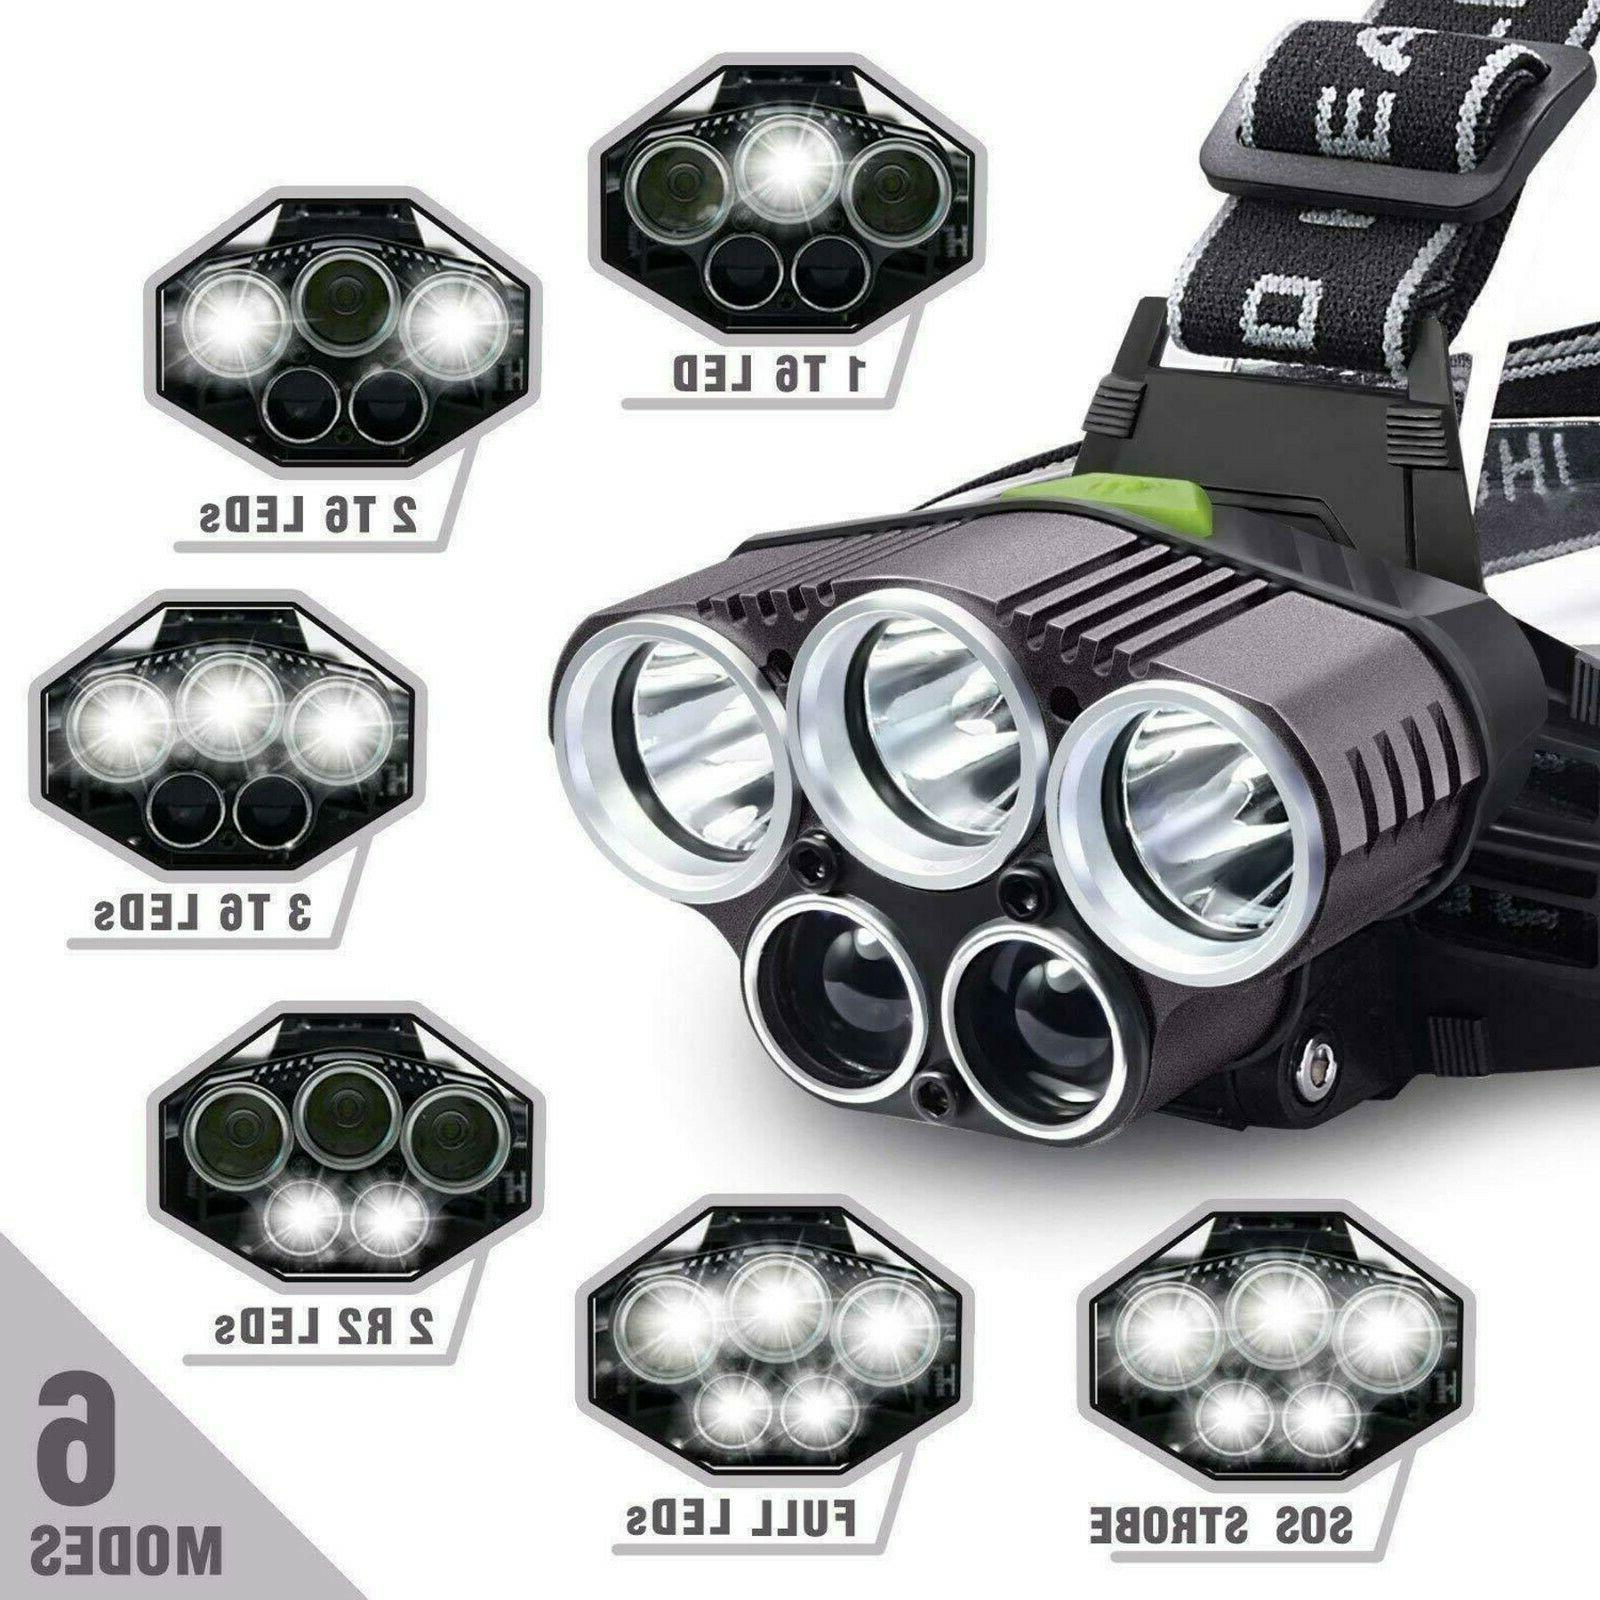 750000LM Headlamp Flashlight Lamp